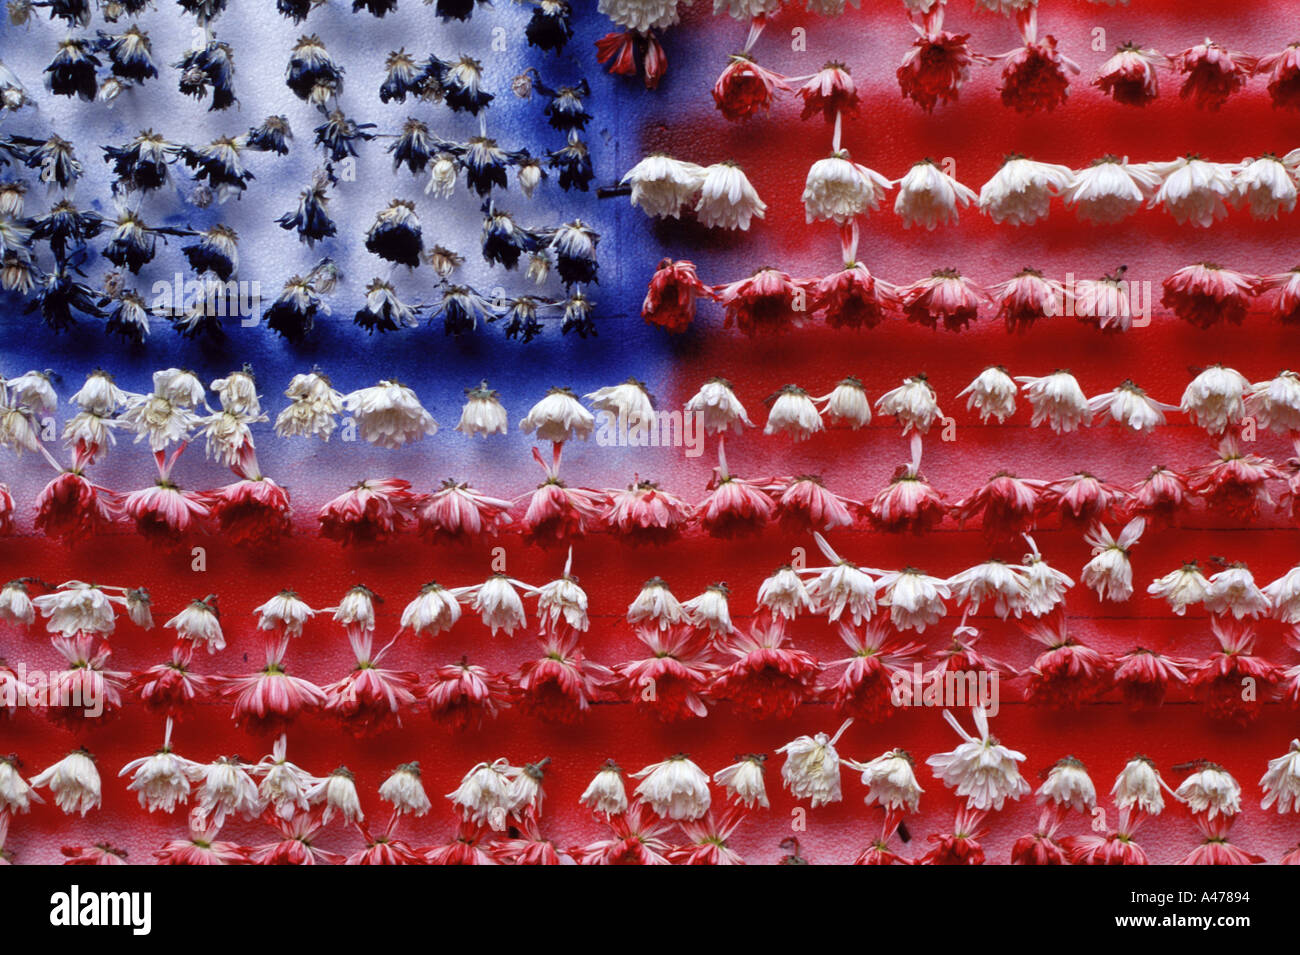 American flag made from carnations that have then wilted September 11 candlelight vigil at Union Square Park New York City - Stock Image